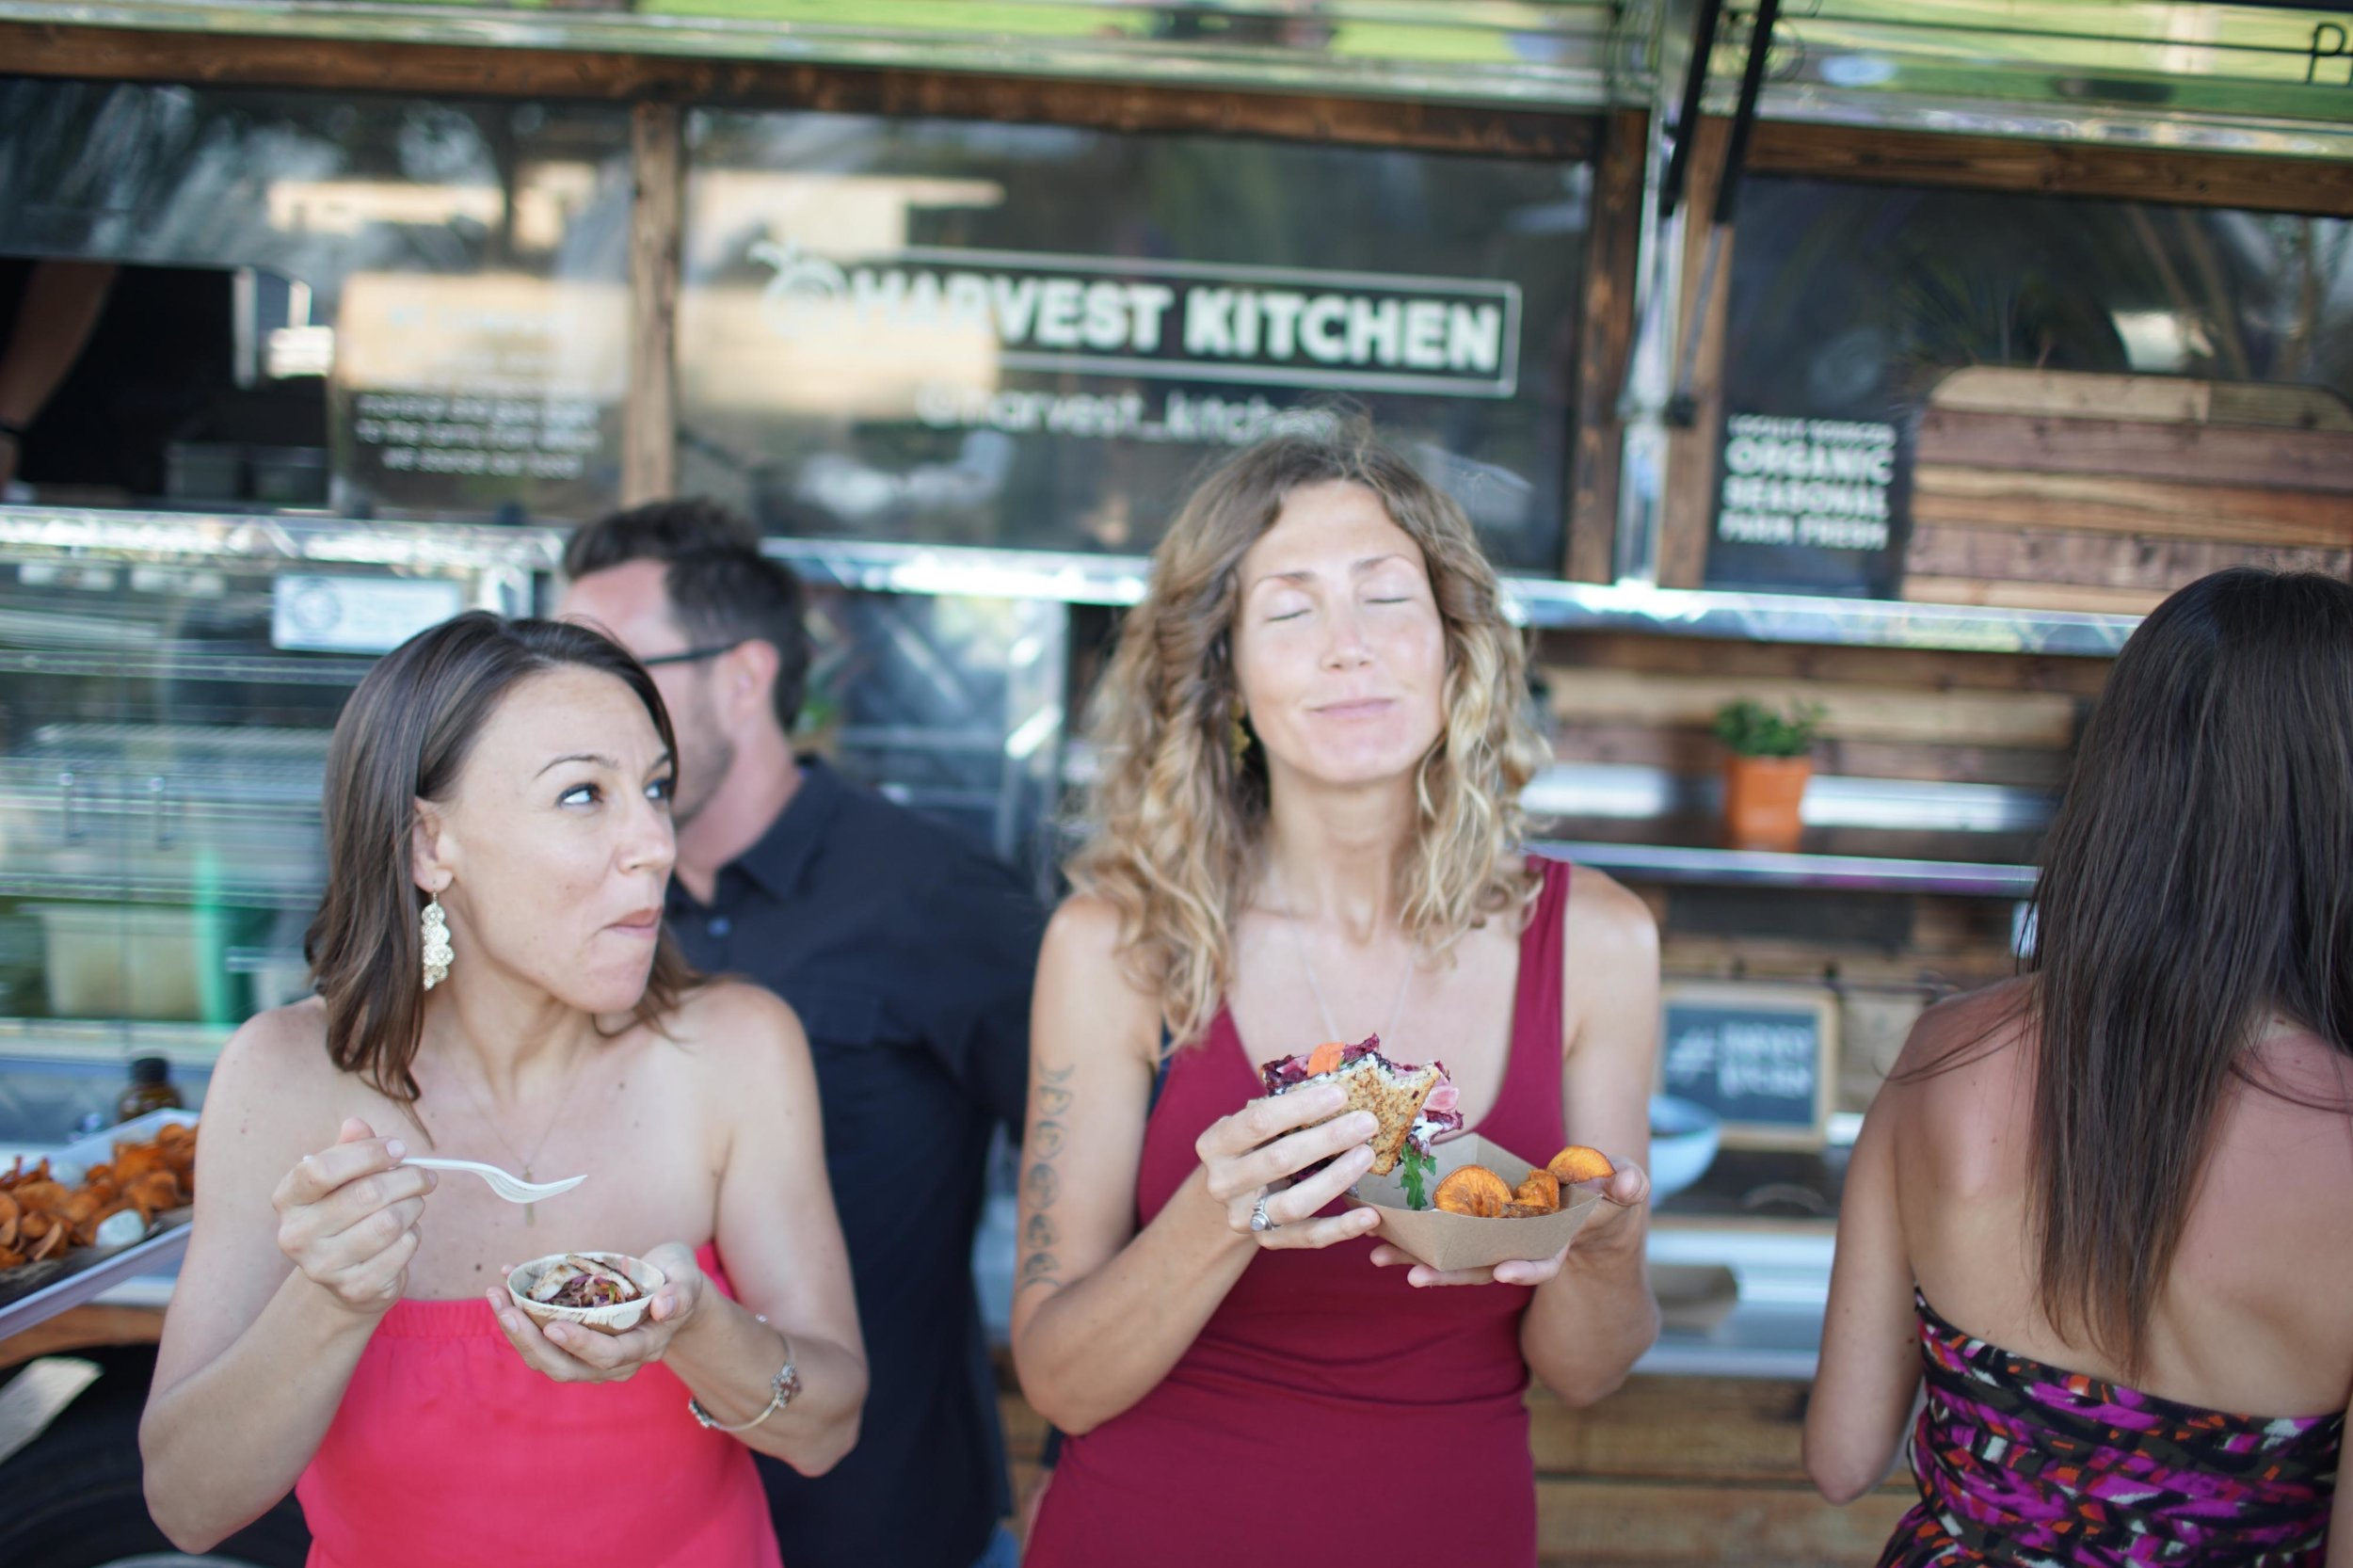 San Diego Organic Food Truck Services for catering, parties, wedding and events.